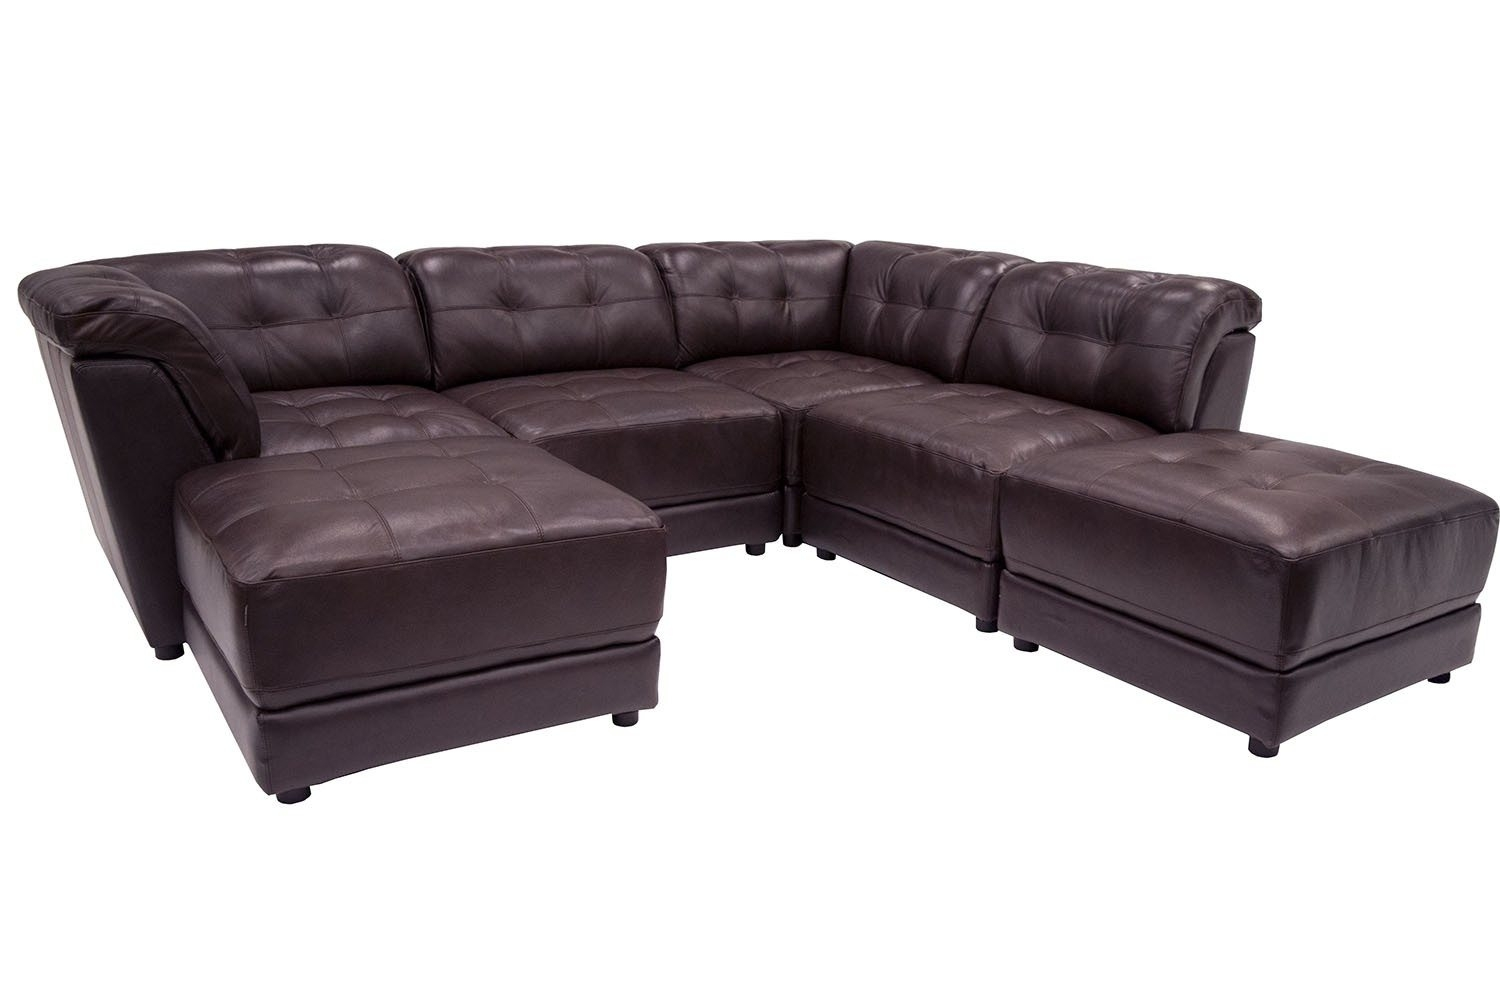 6 Piece Modular Sectional Sofa Regarding 6 Piece Modular Sectional Sofa (Image 2 of 15)